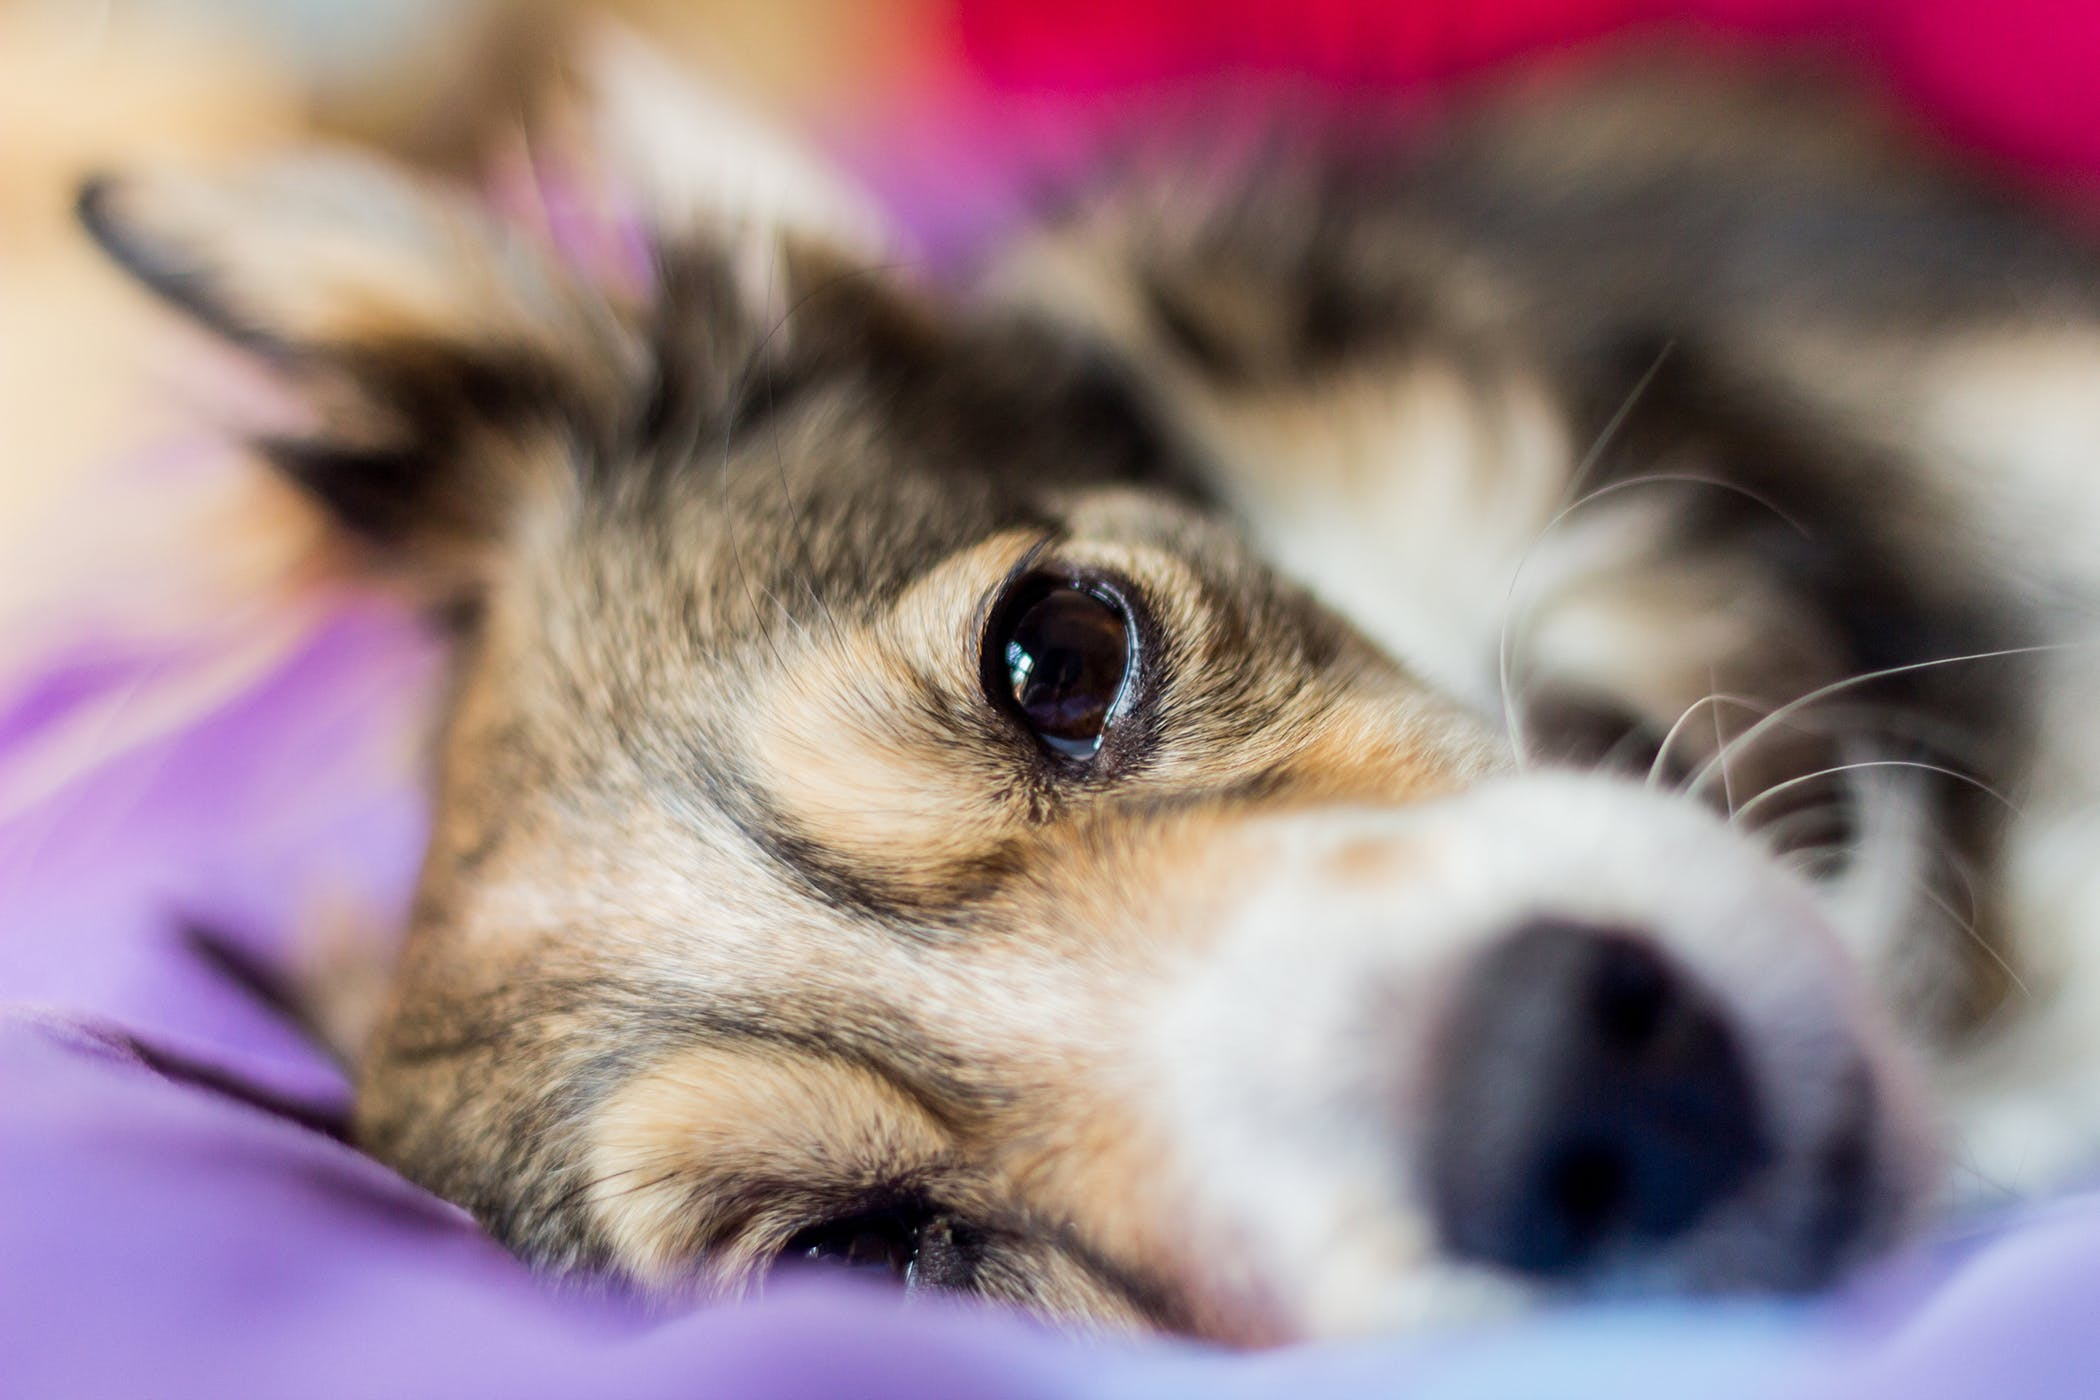 Abdominal Lymph Node Removal in Dogs - Procedure, Efficacy, Recovery